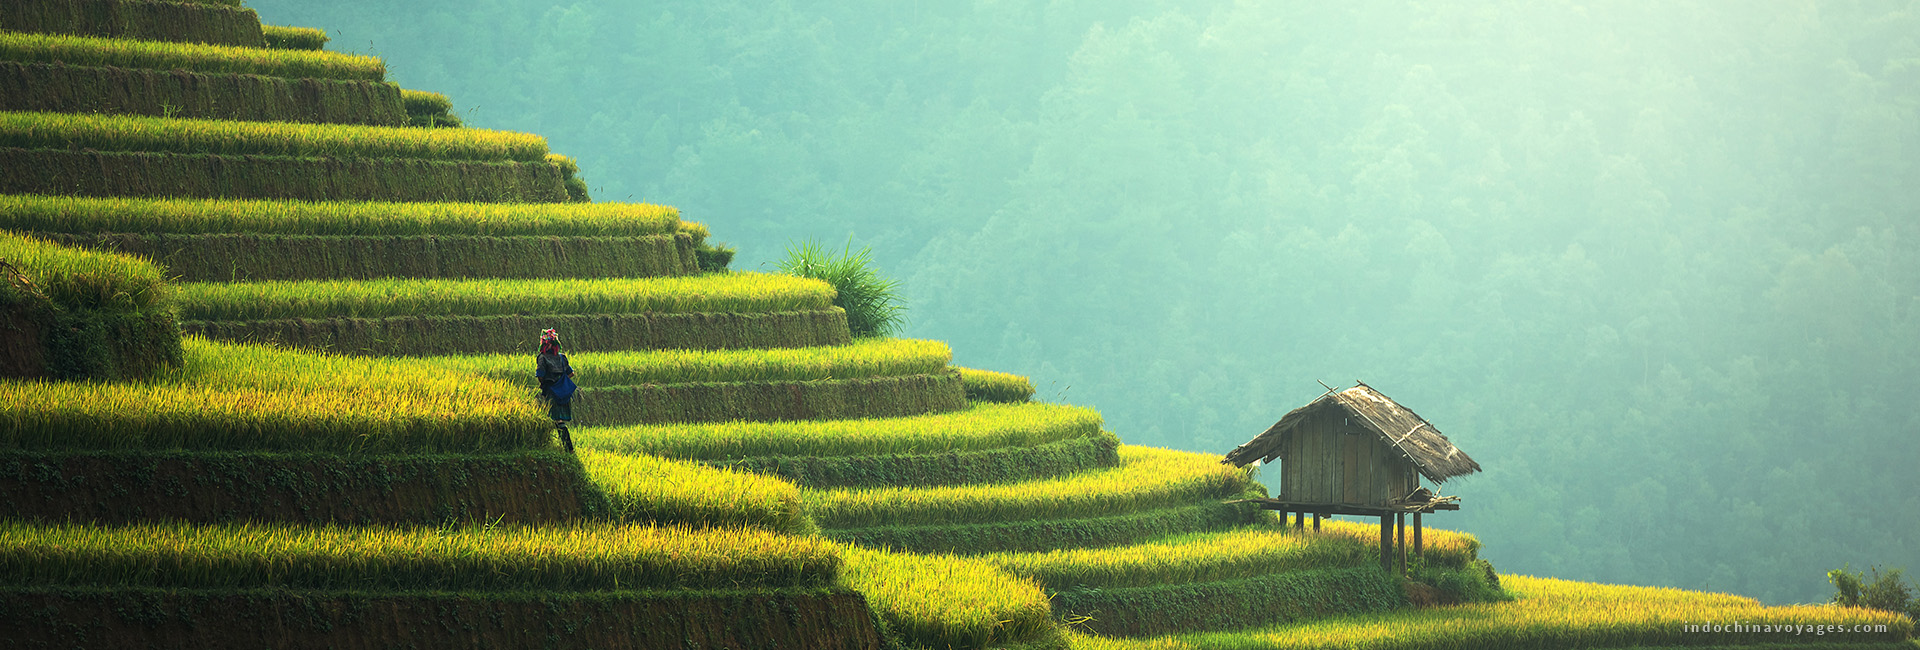 3 suggestions for Vietnam itinerary one week